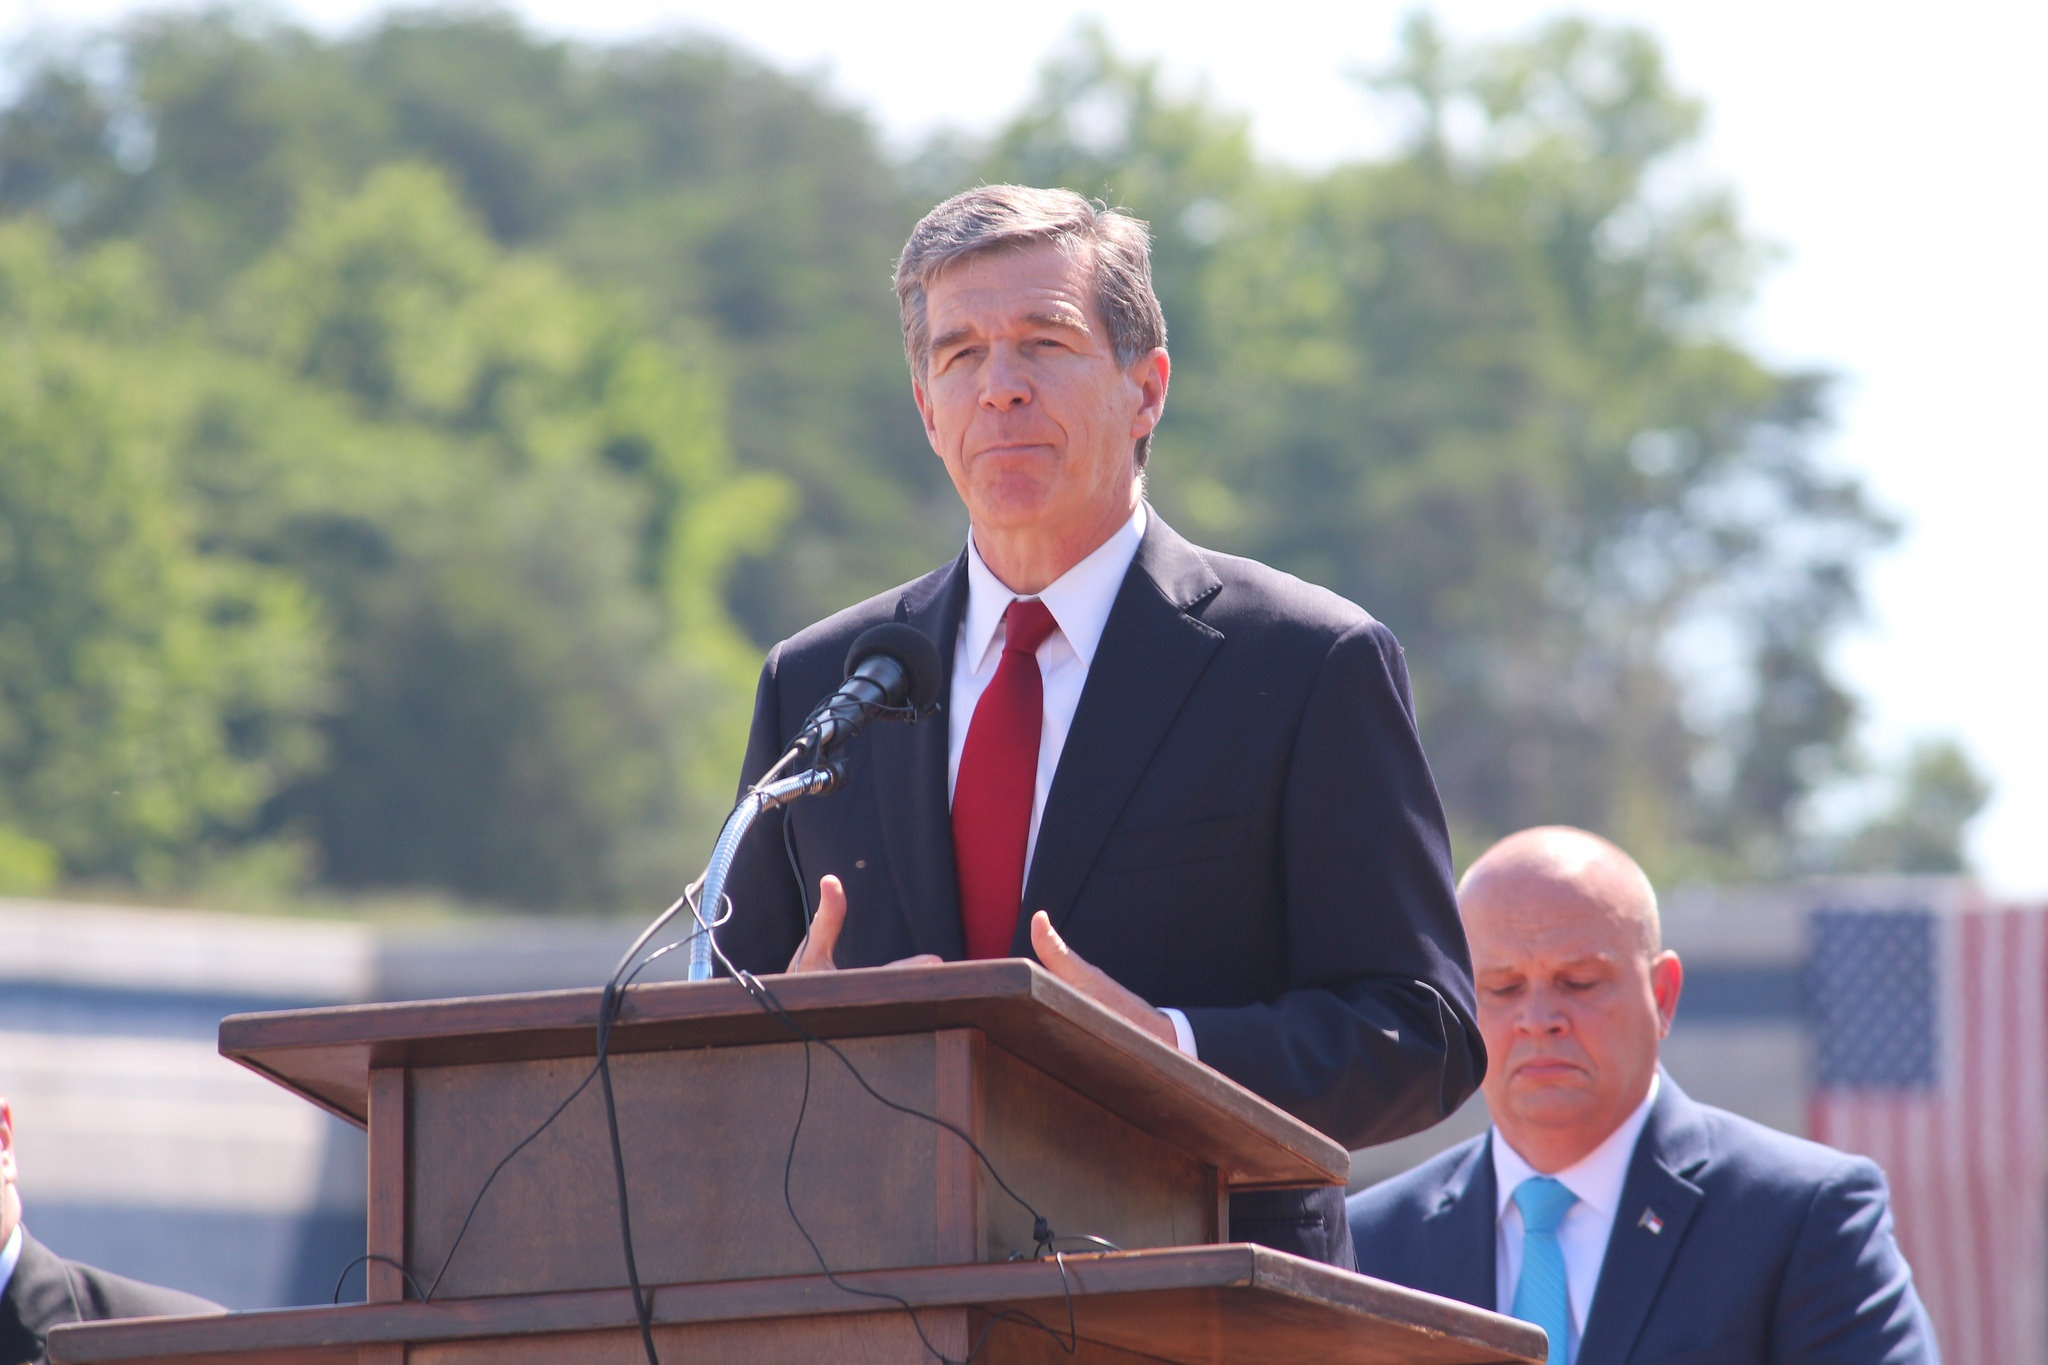 North Carolina joins climate alliance to meet Paris accord target | Utility Dive